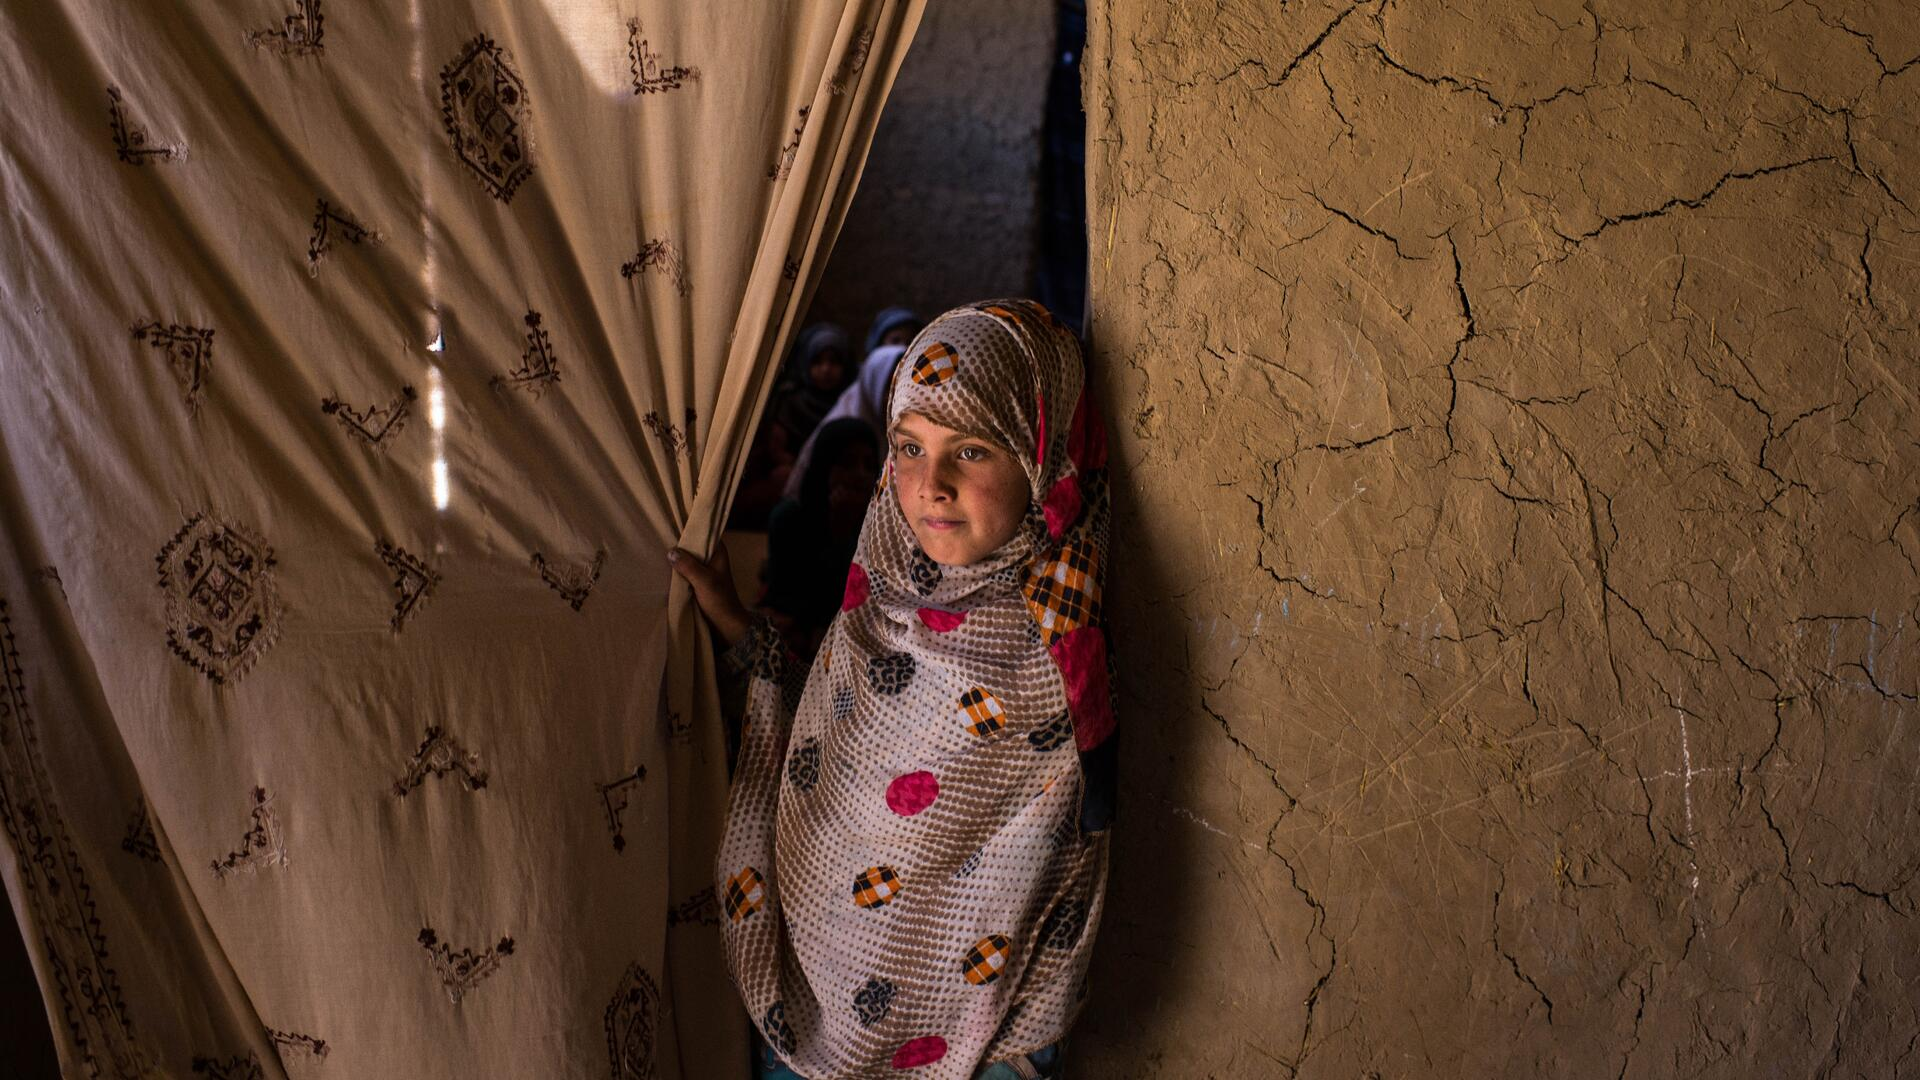 A young girl stands at the entrance to her classroom in Kabul, pulling back a curtain in the doorway and looking into the distance.